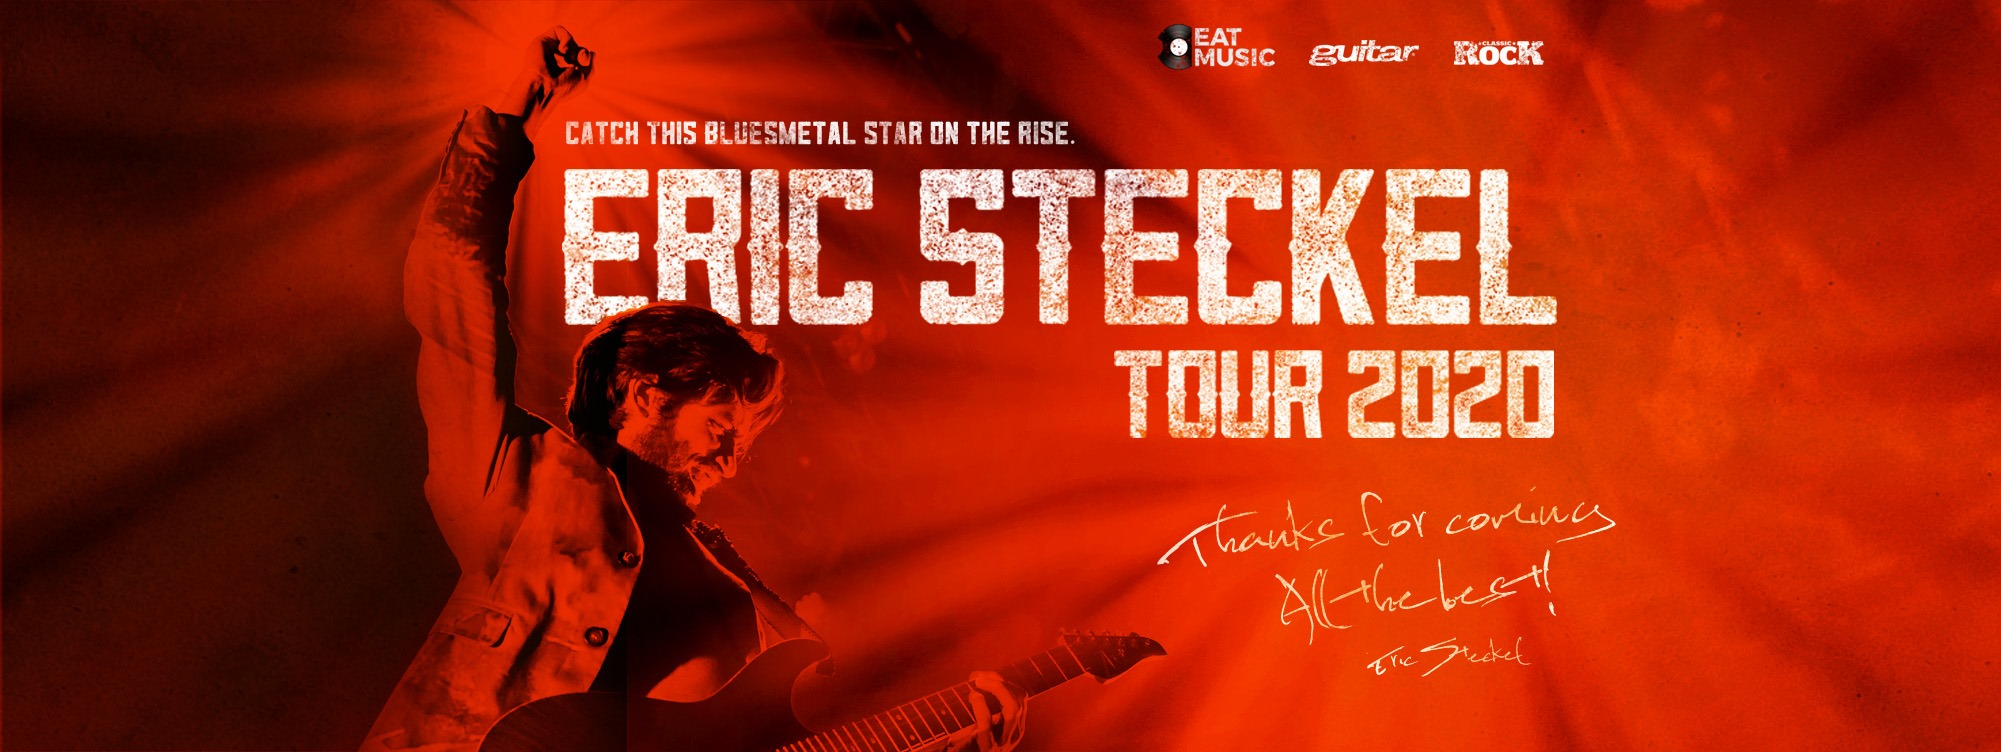 Eric Steckel am 30. March 2020 @ Rockhouse Salzburg - Bar.